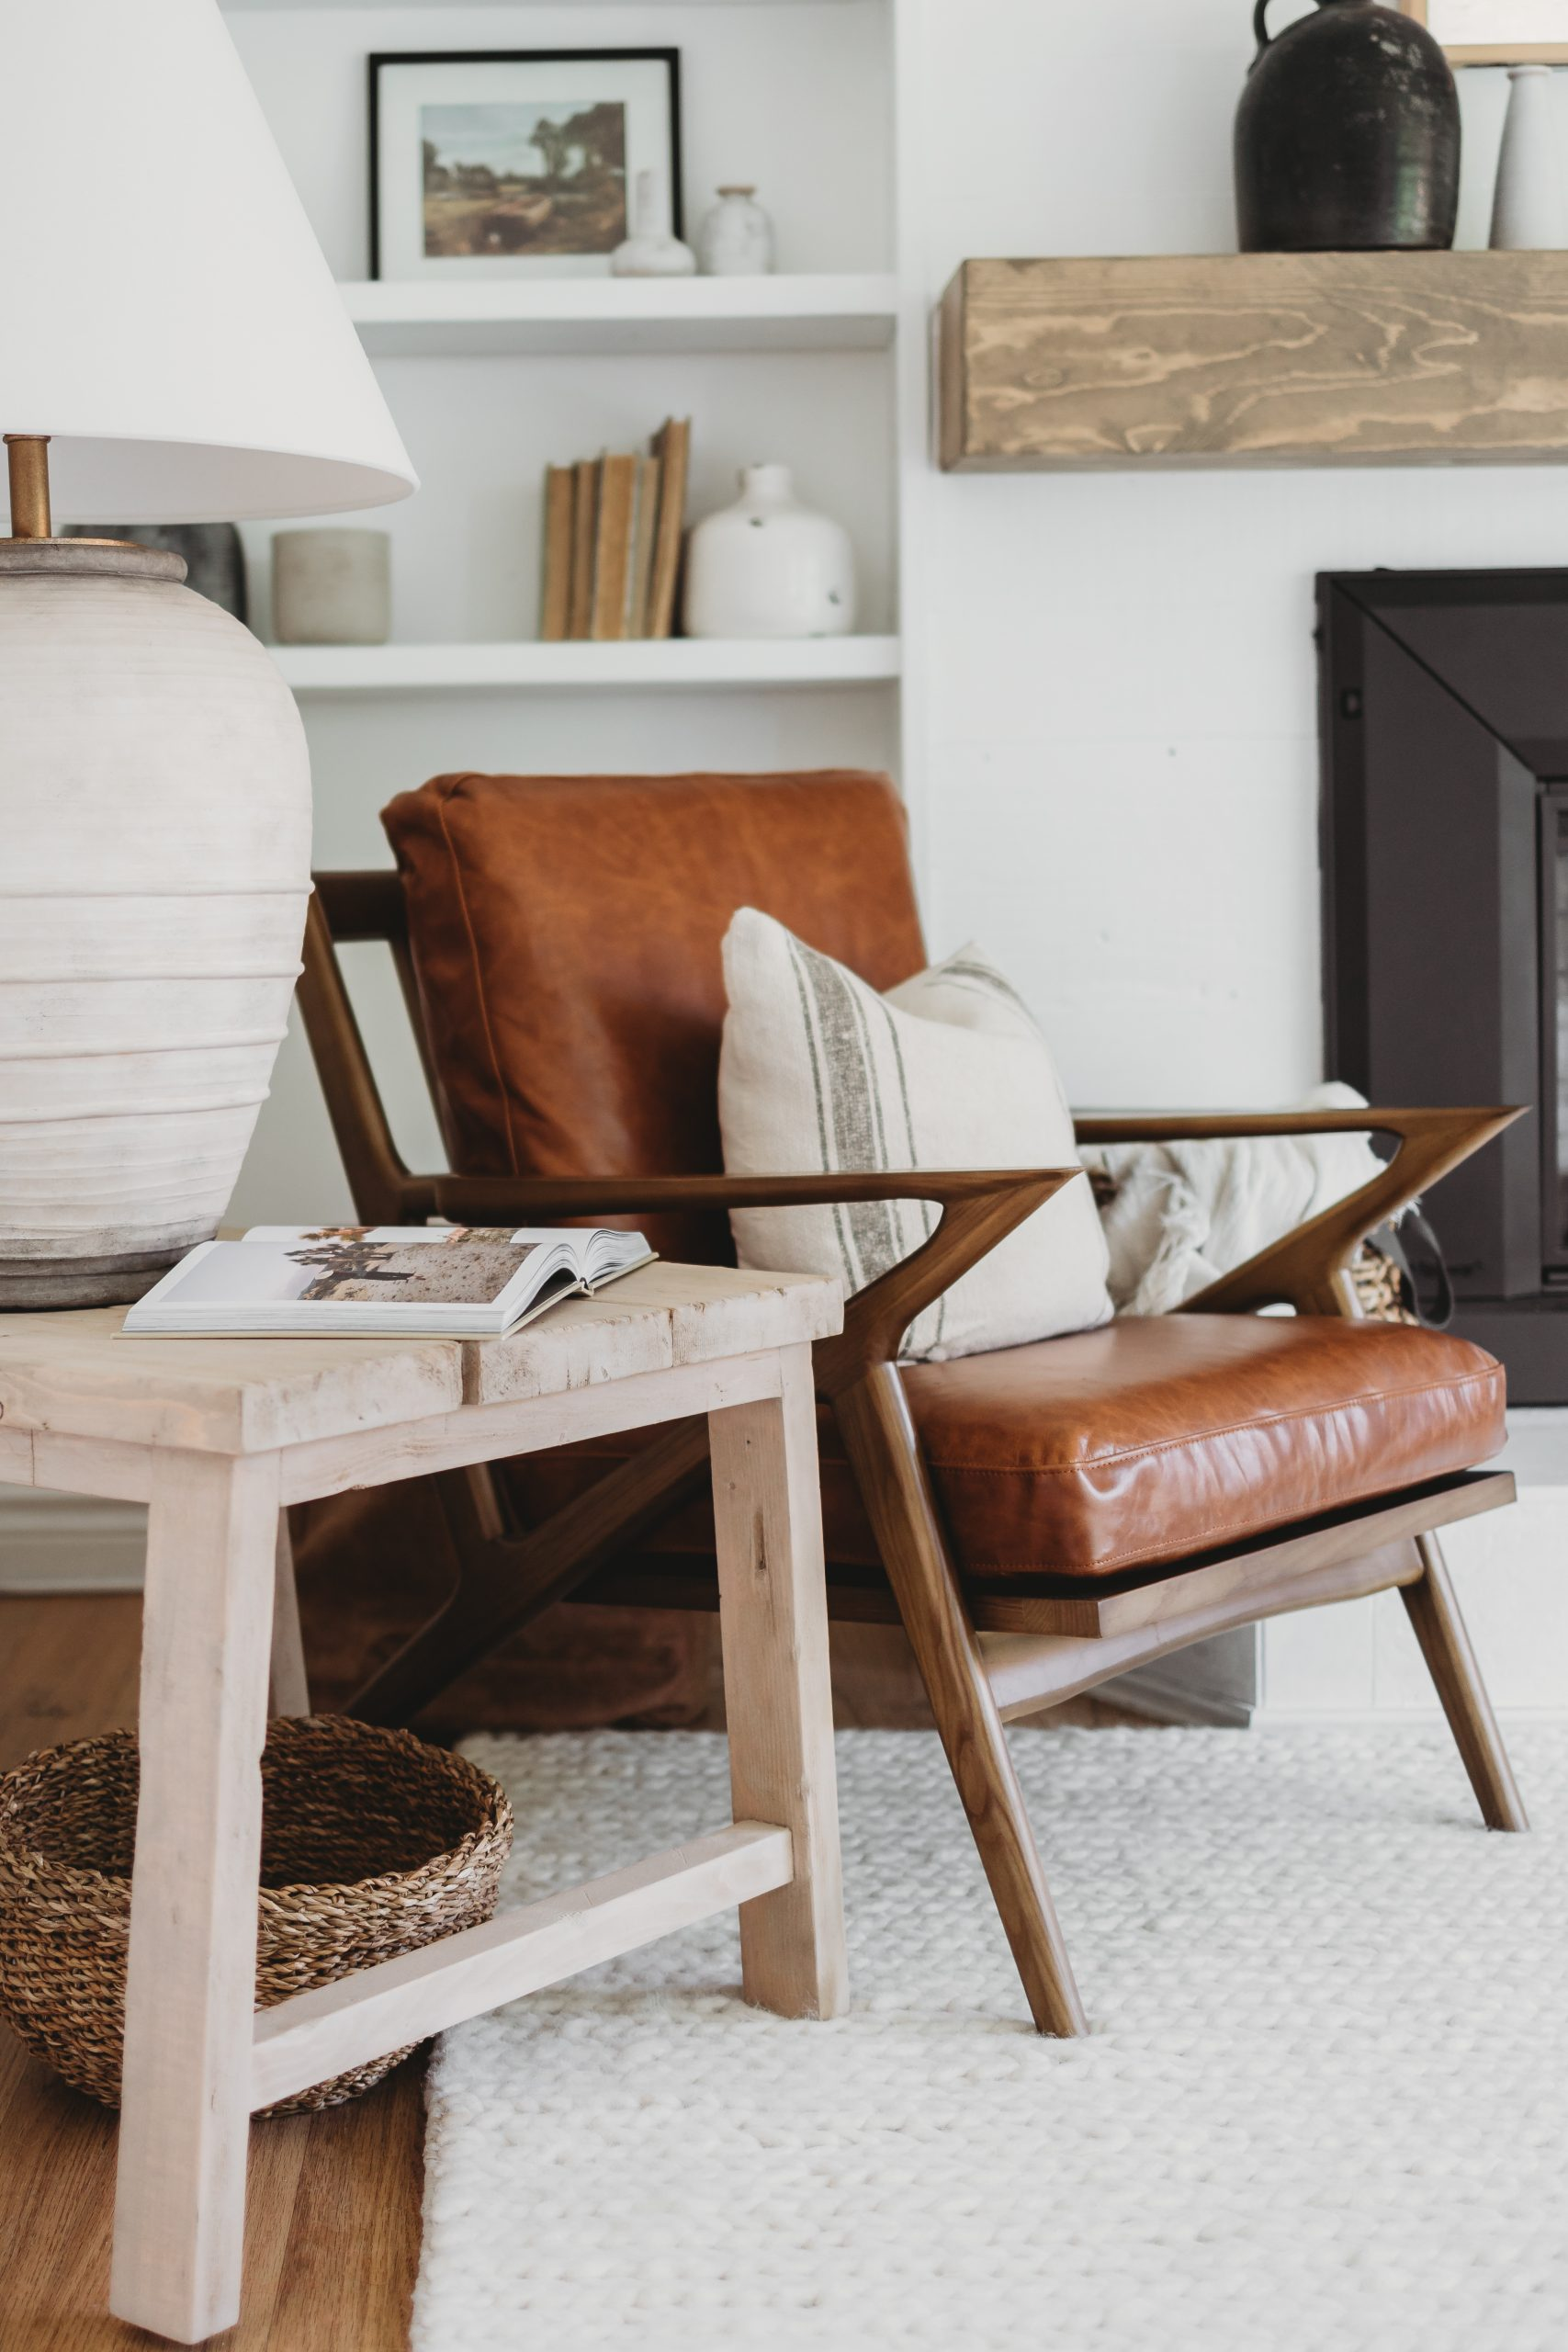 Updated Modern Coastal Living Room. How we styled our Kavuus sectional and leather chairs as well as our vintage artwork and Samsung frame TV on our white shiplap fireplace.